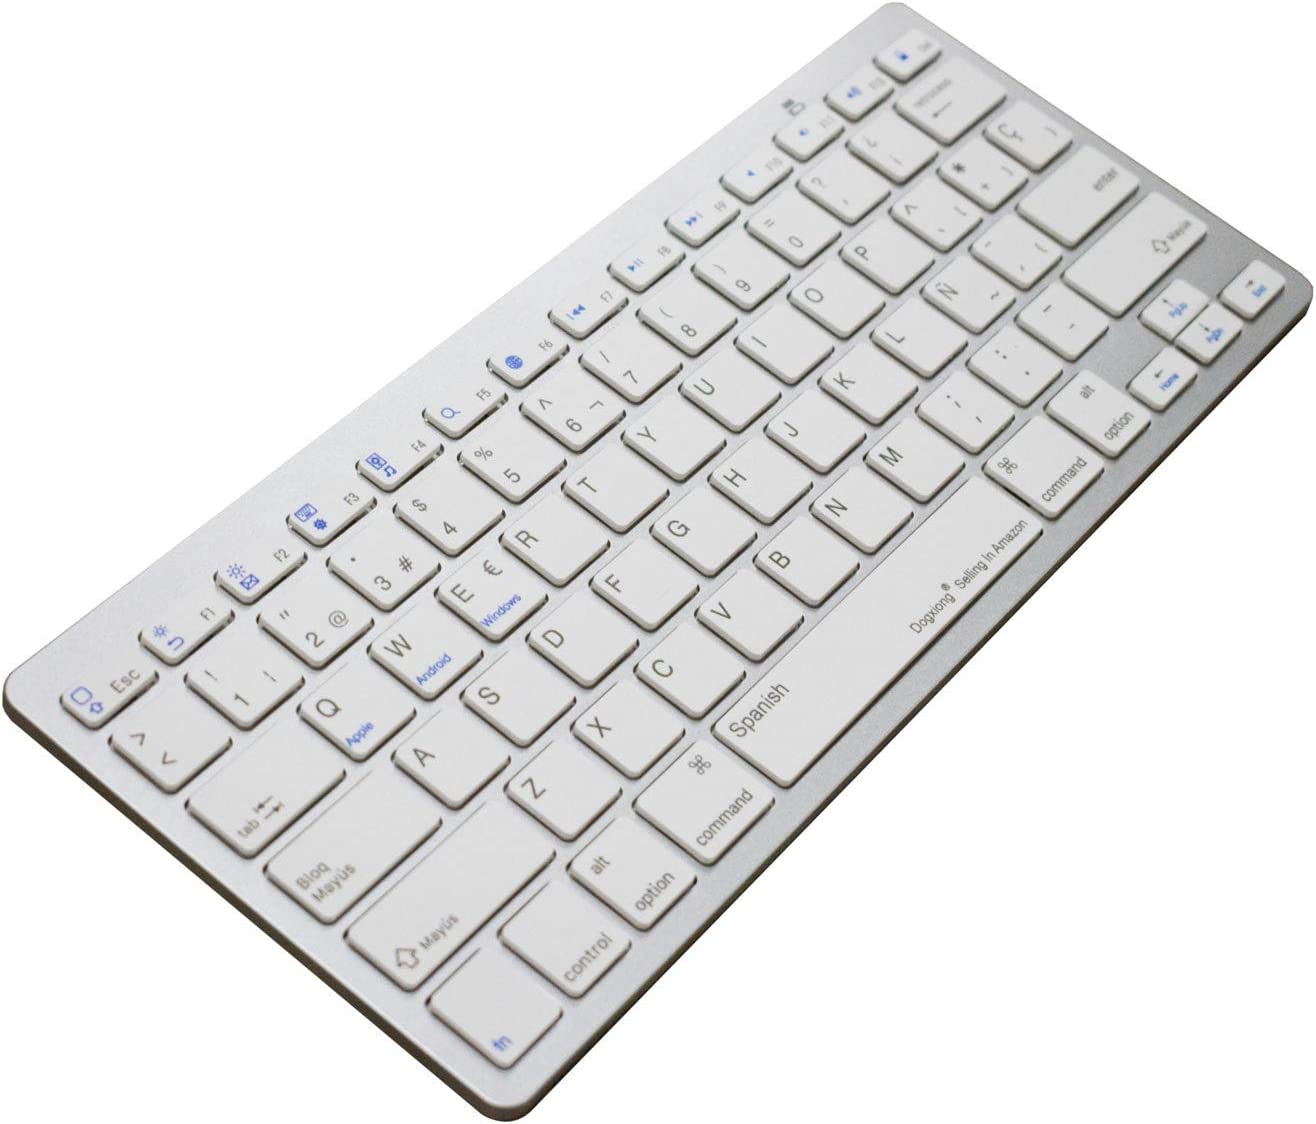 Work Efficiency Spanish Spain Language Functional Shortcuts Hotkey Wireless Bluetooth Keyboard For Dell Thinkpad iMac Macbook Pro,iPad Pro 11 12.9, iPad Air Mini,iPhone X XS XR MAX Surface Pro 4 5 6 7